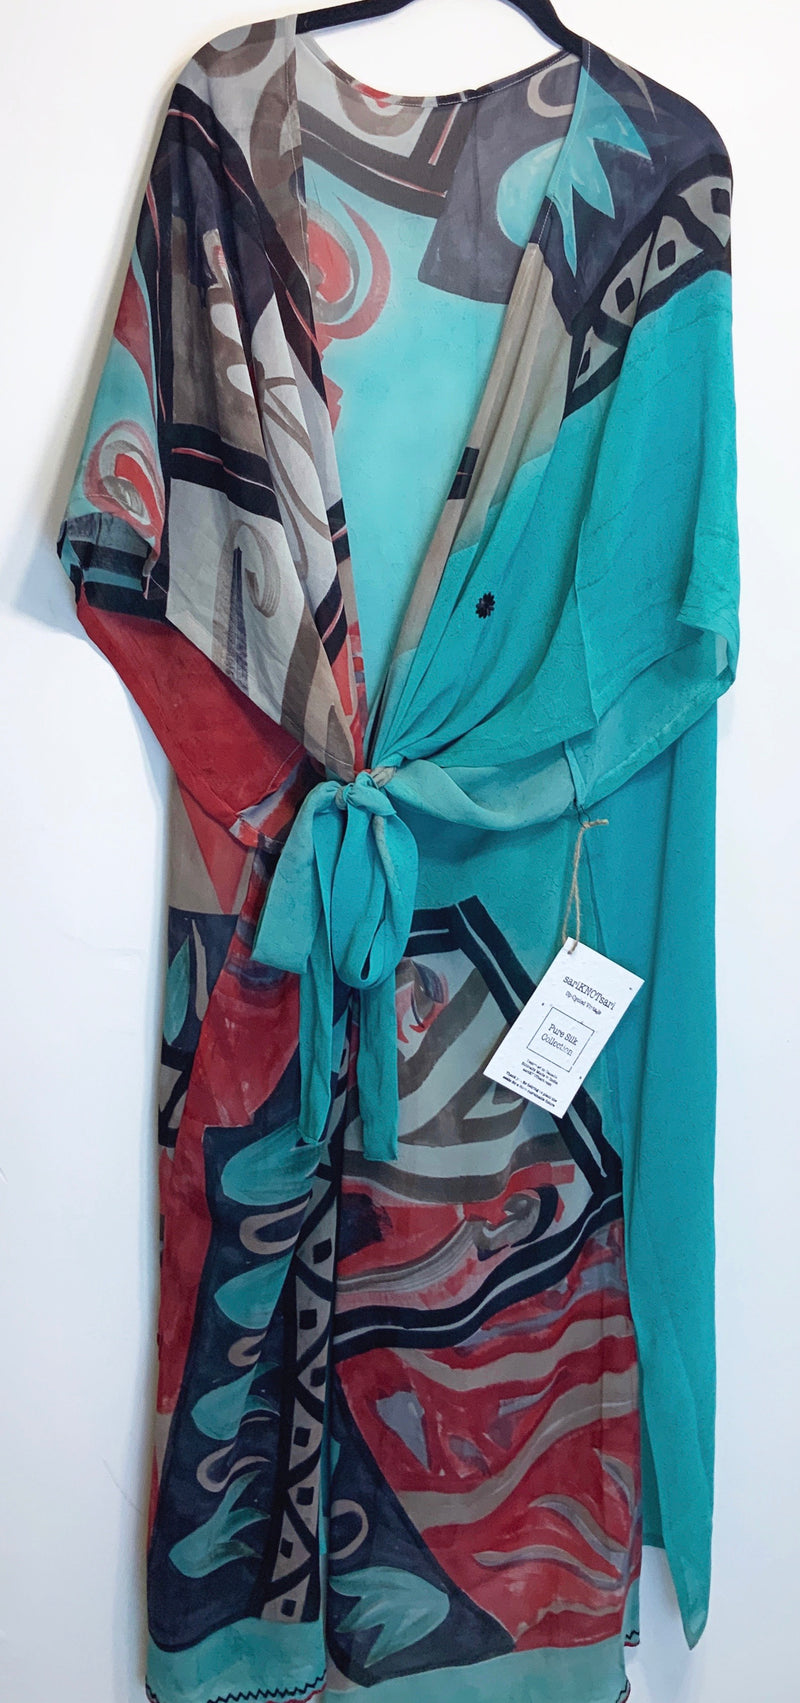 Picasso Sheer Wabi-sabi Pure Silk Kimono-Sleeved Duster with Belt